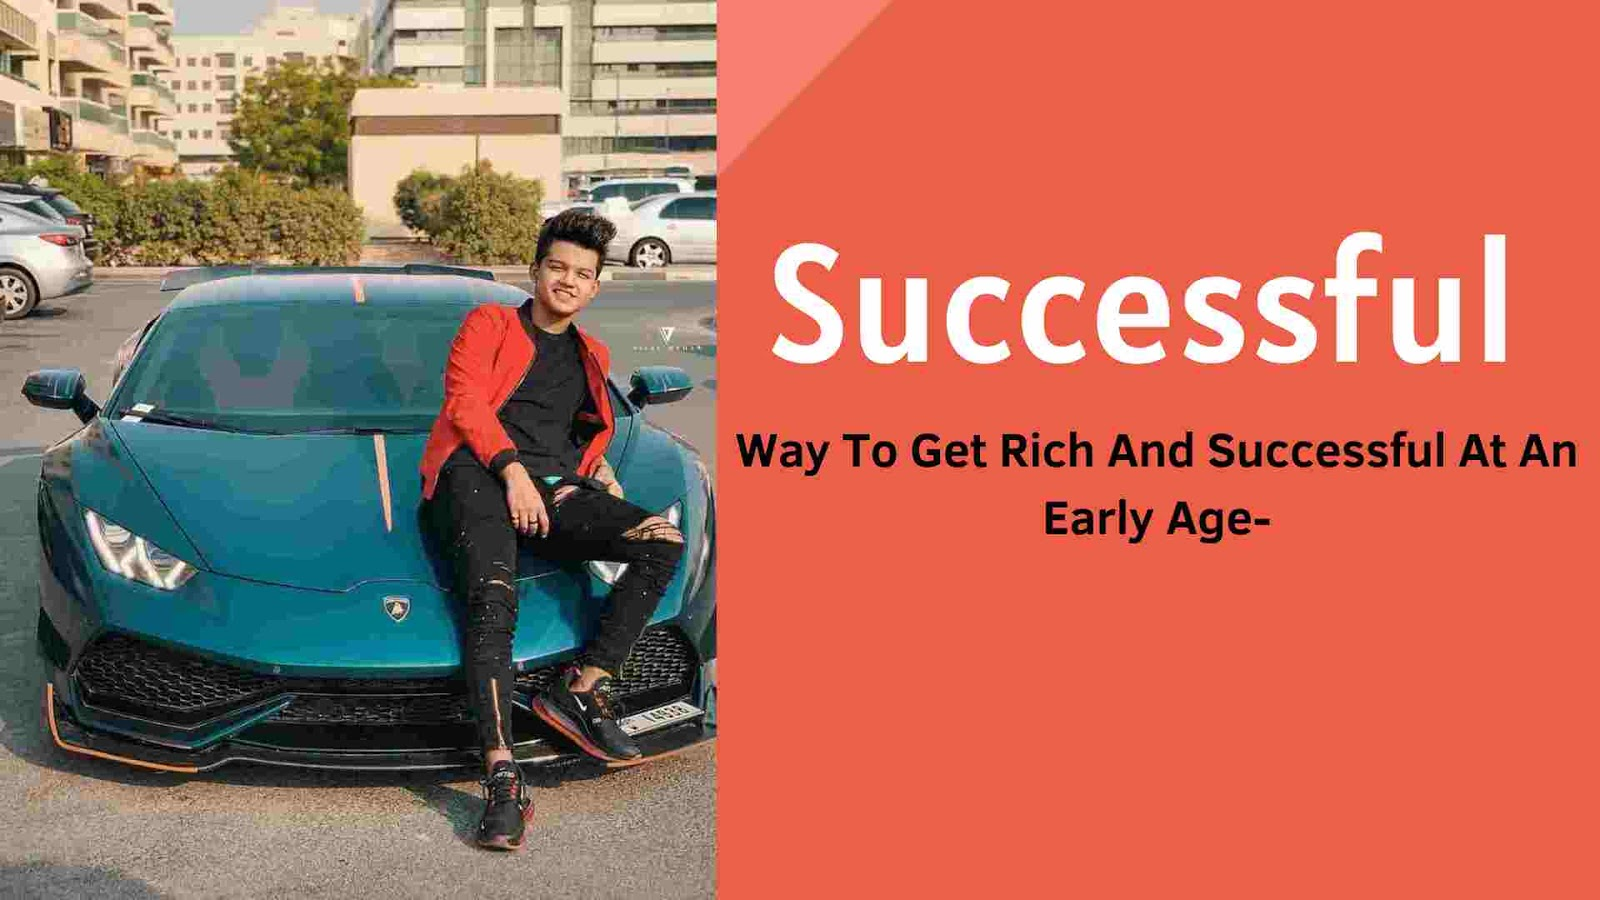 Way To Get Rich And Successful At An Early Age - Motivational